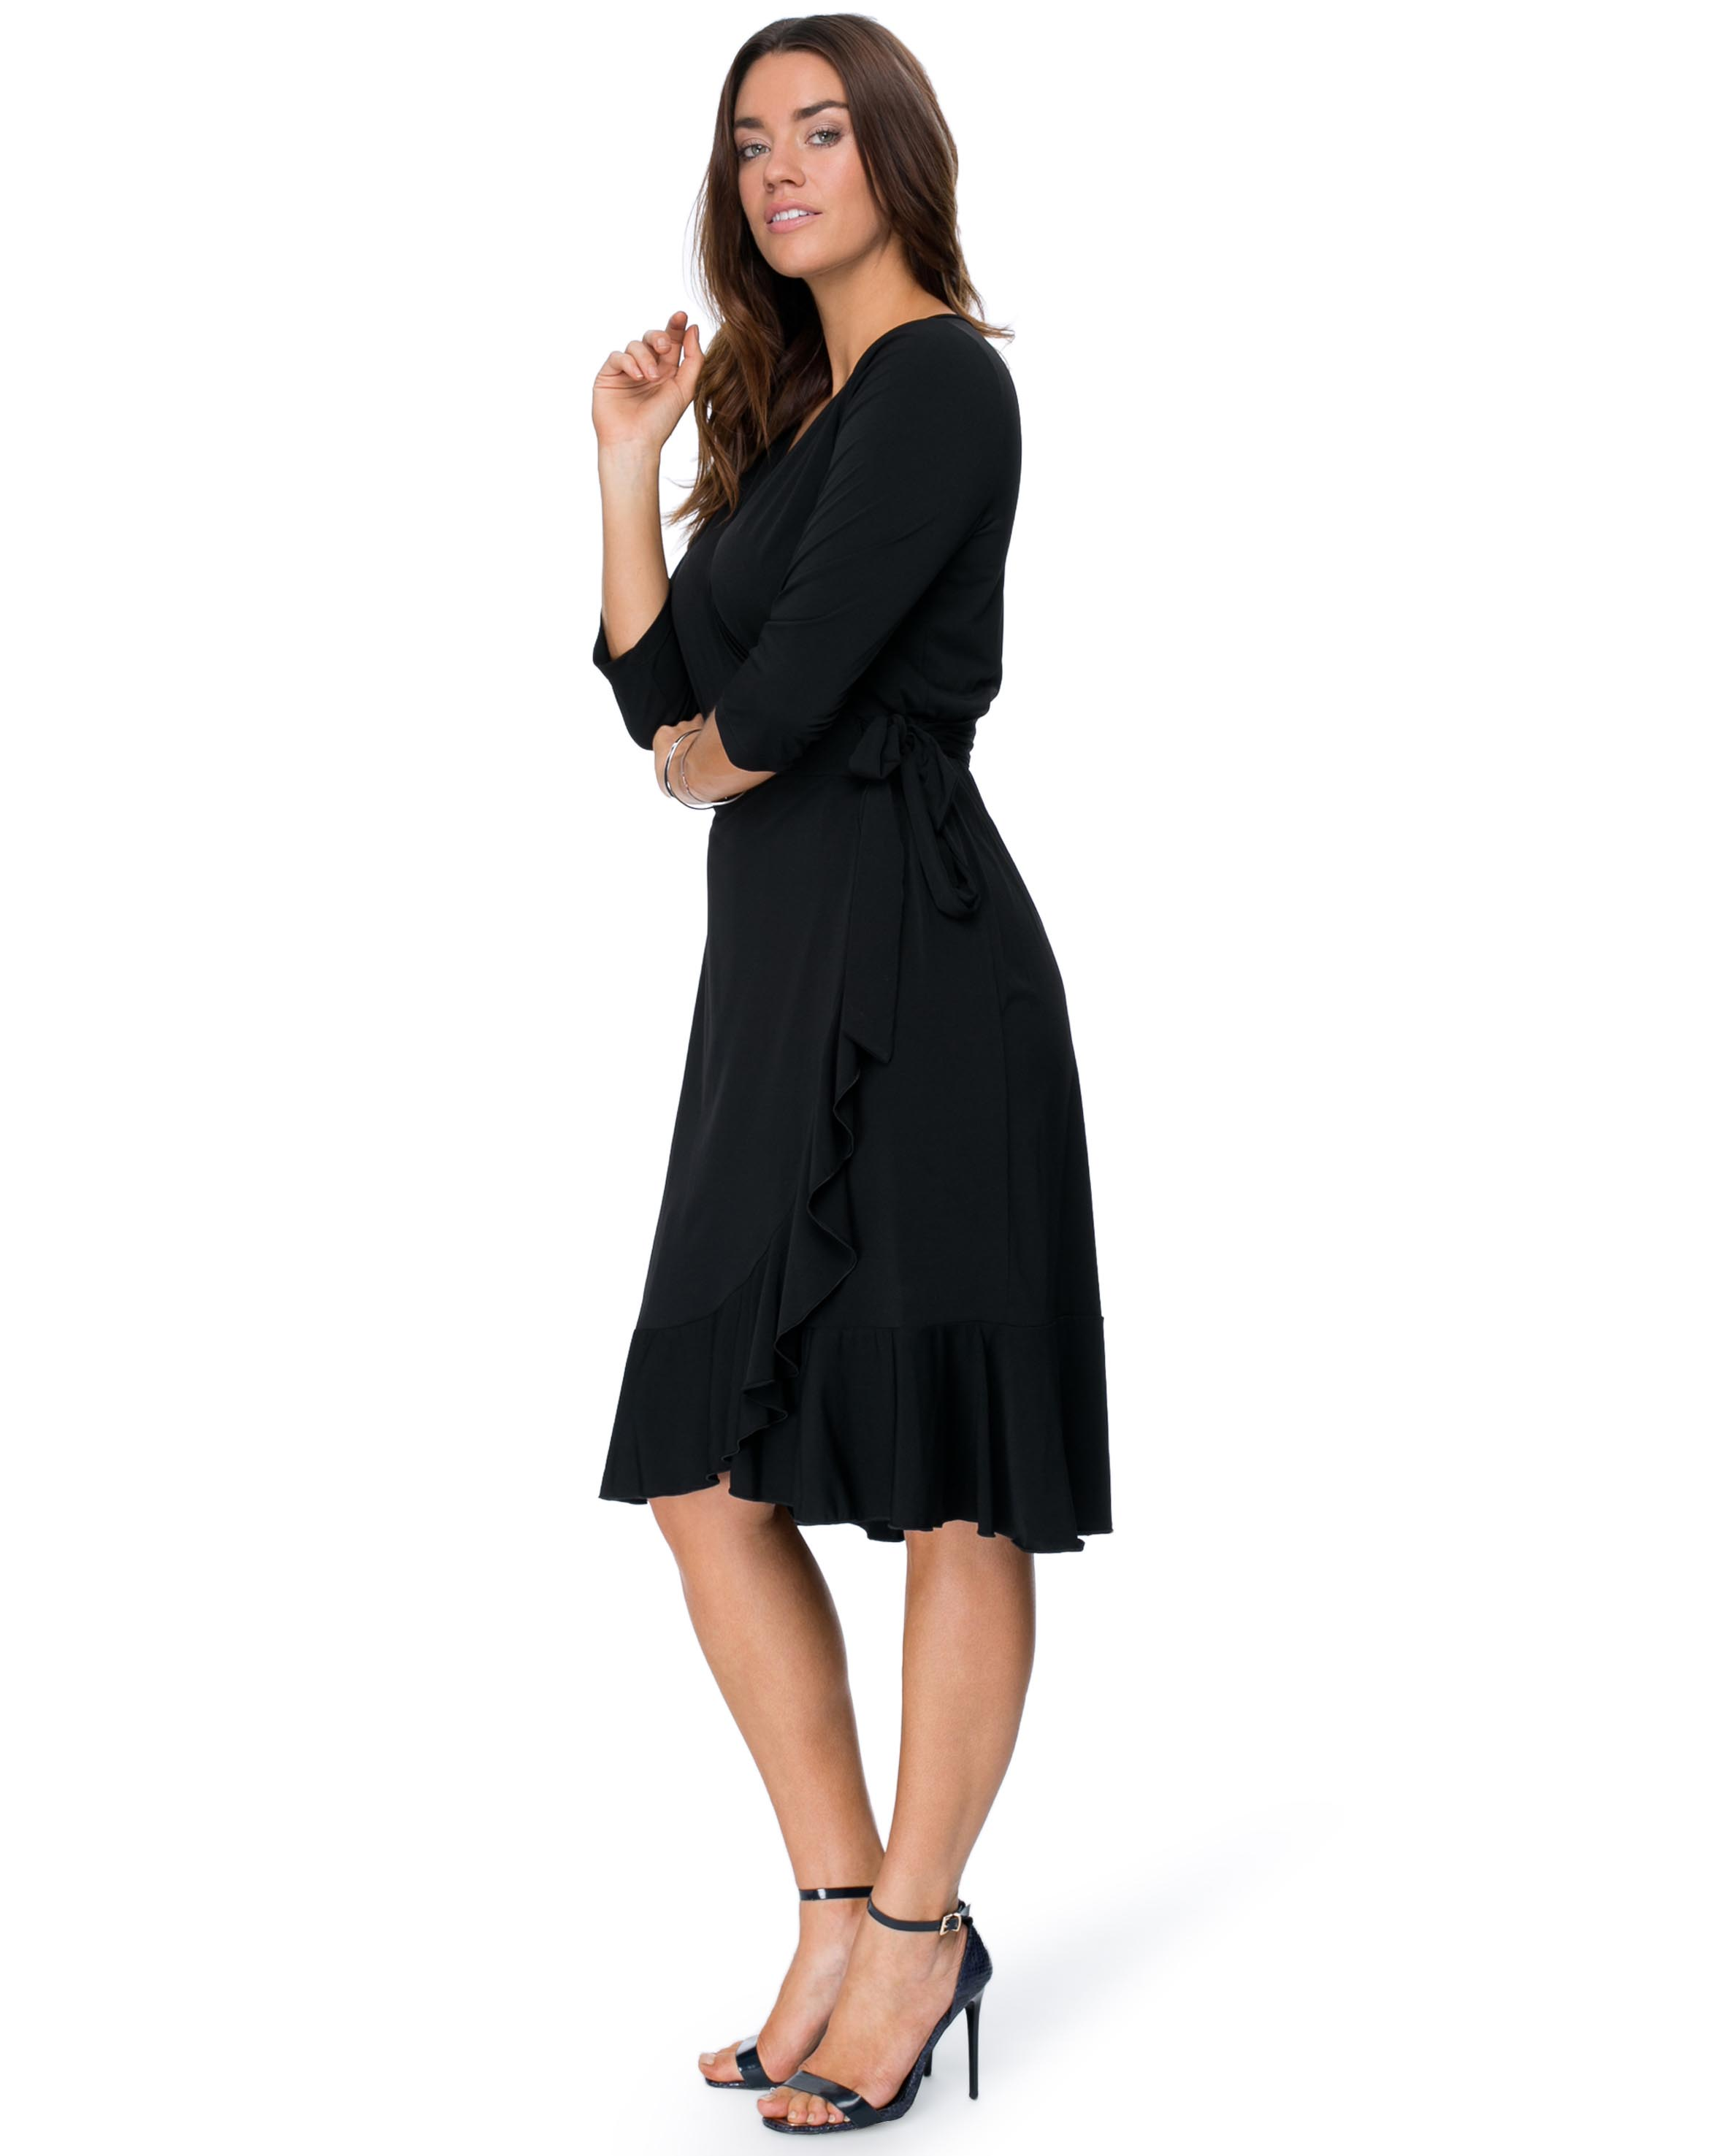 Flattering Dresses For Curvy Women